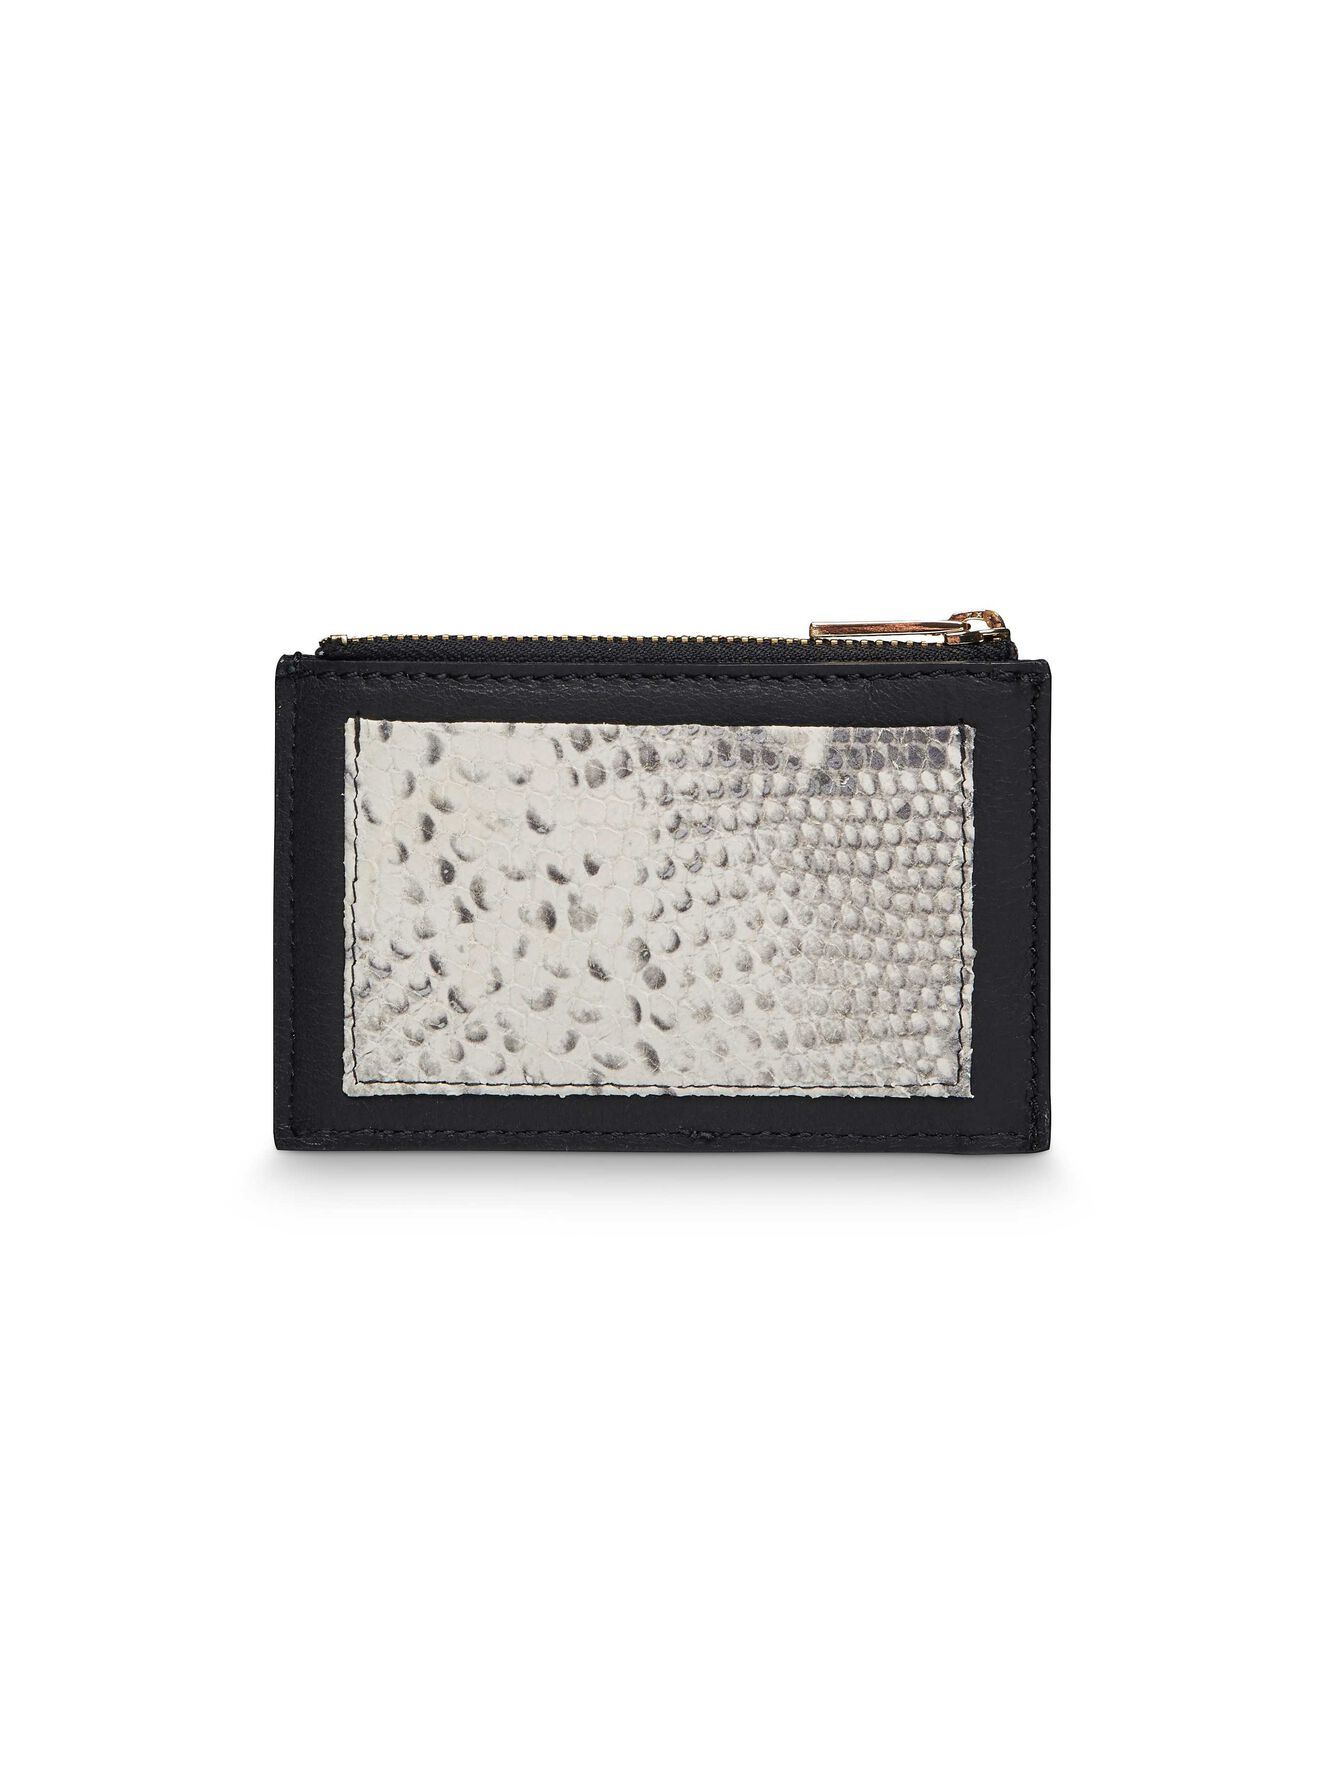 Mouly M card holder in Black from Tiger of Sweden